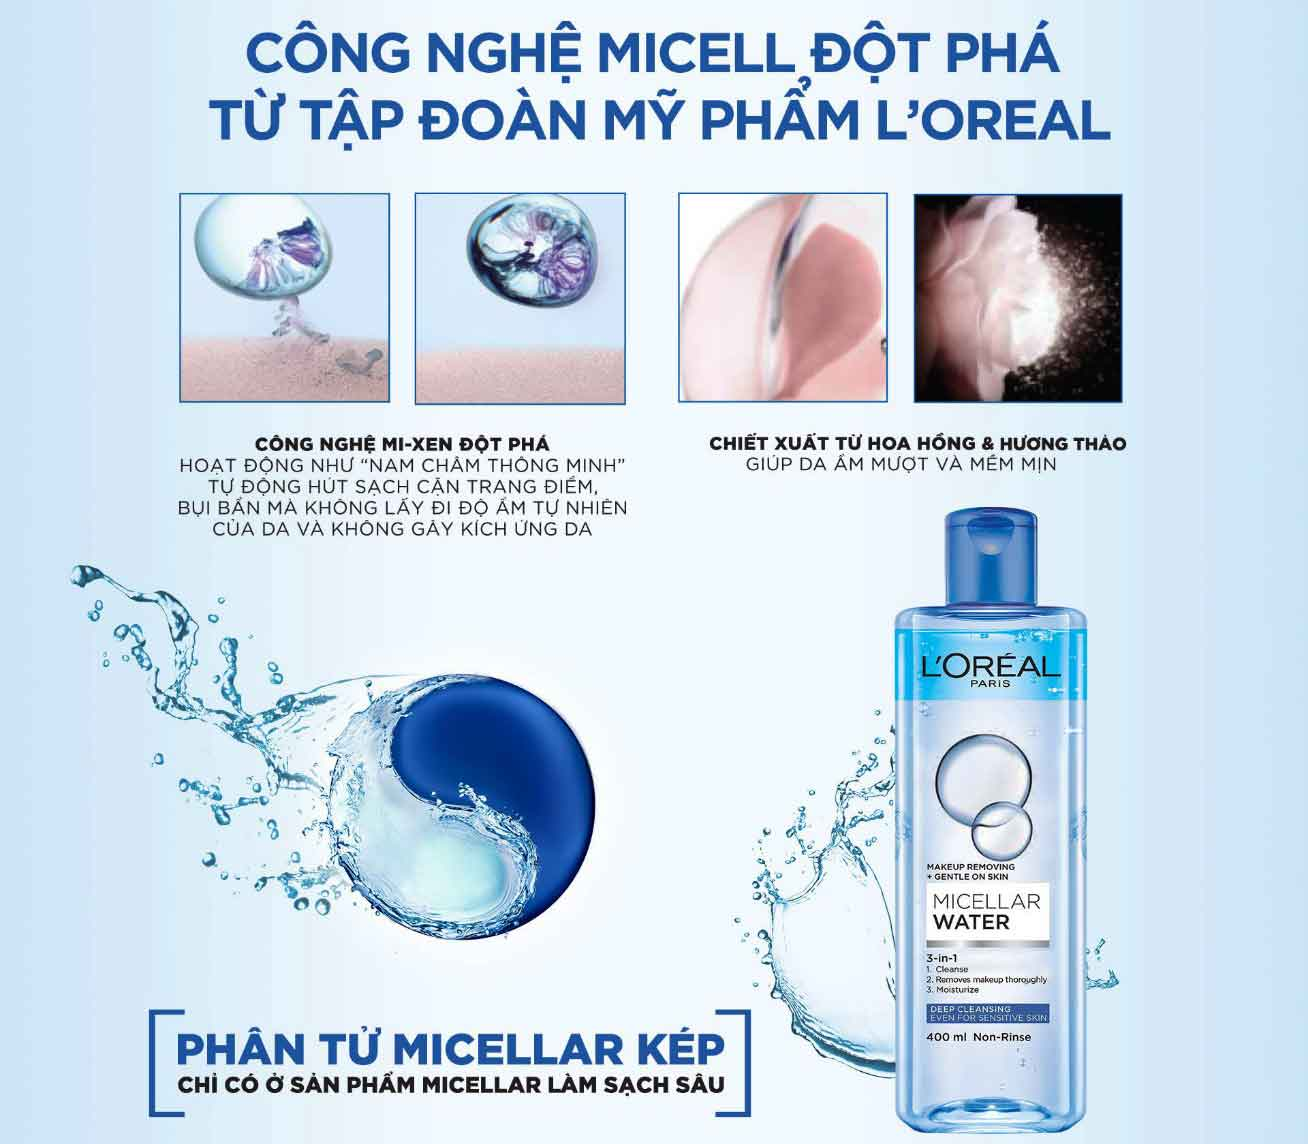 nuoc-tay-trang-l-oreal-3-in-1-1-review